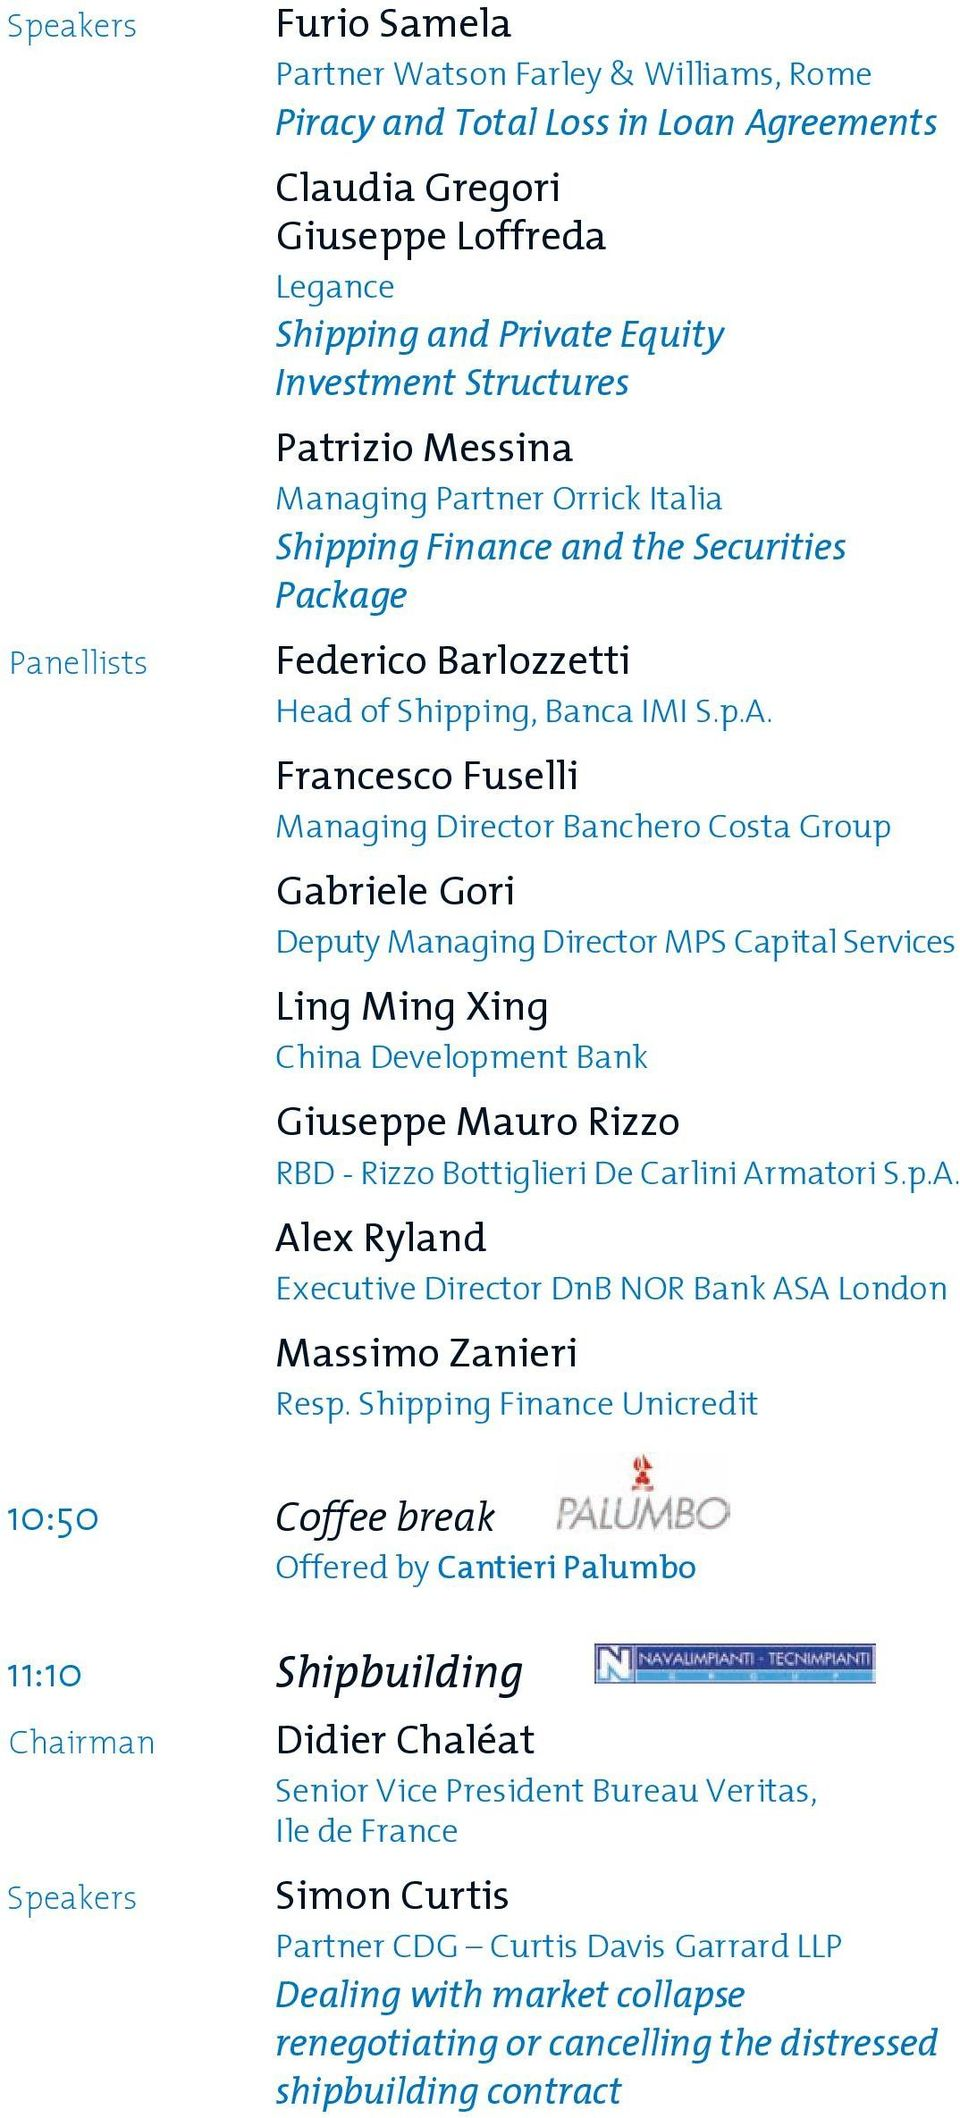 Francesco Fuselli Managing Director Banchero Costa Group Gabriele Gori Deputy Managing Director MPS Capital Services Ling Ming Xing China Development Bank Giuseppe Mauro Rizzo RBD - Rizzo Bottiglieri